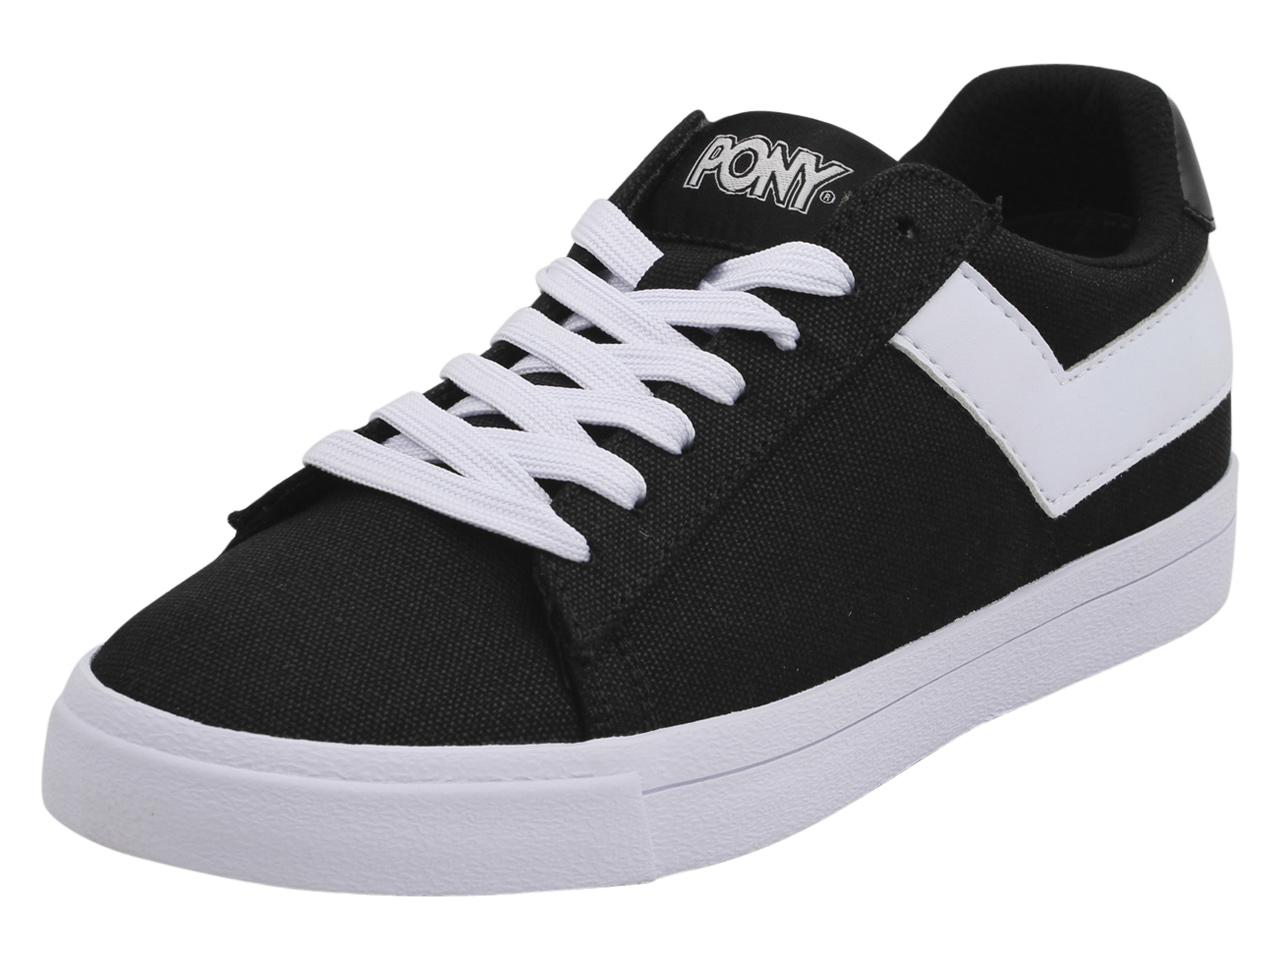 2d2949d3a30f Pony Women s Top-Star-Lo-Core-Canvas Sneakers Shoes